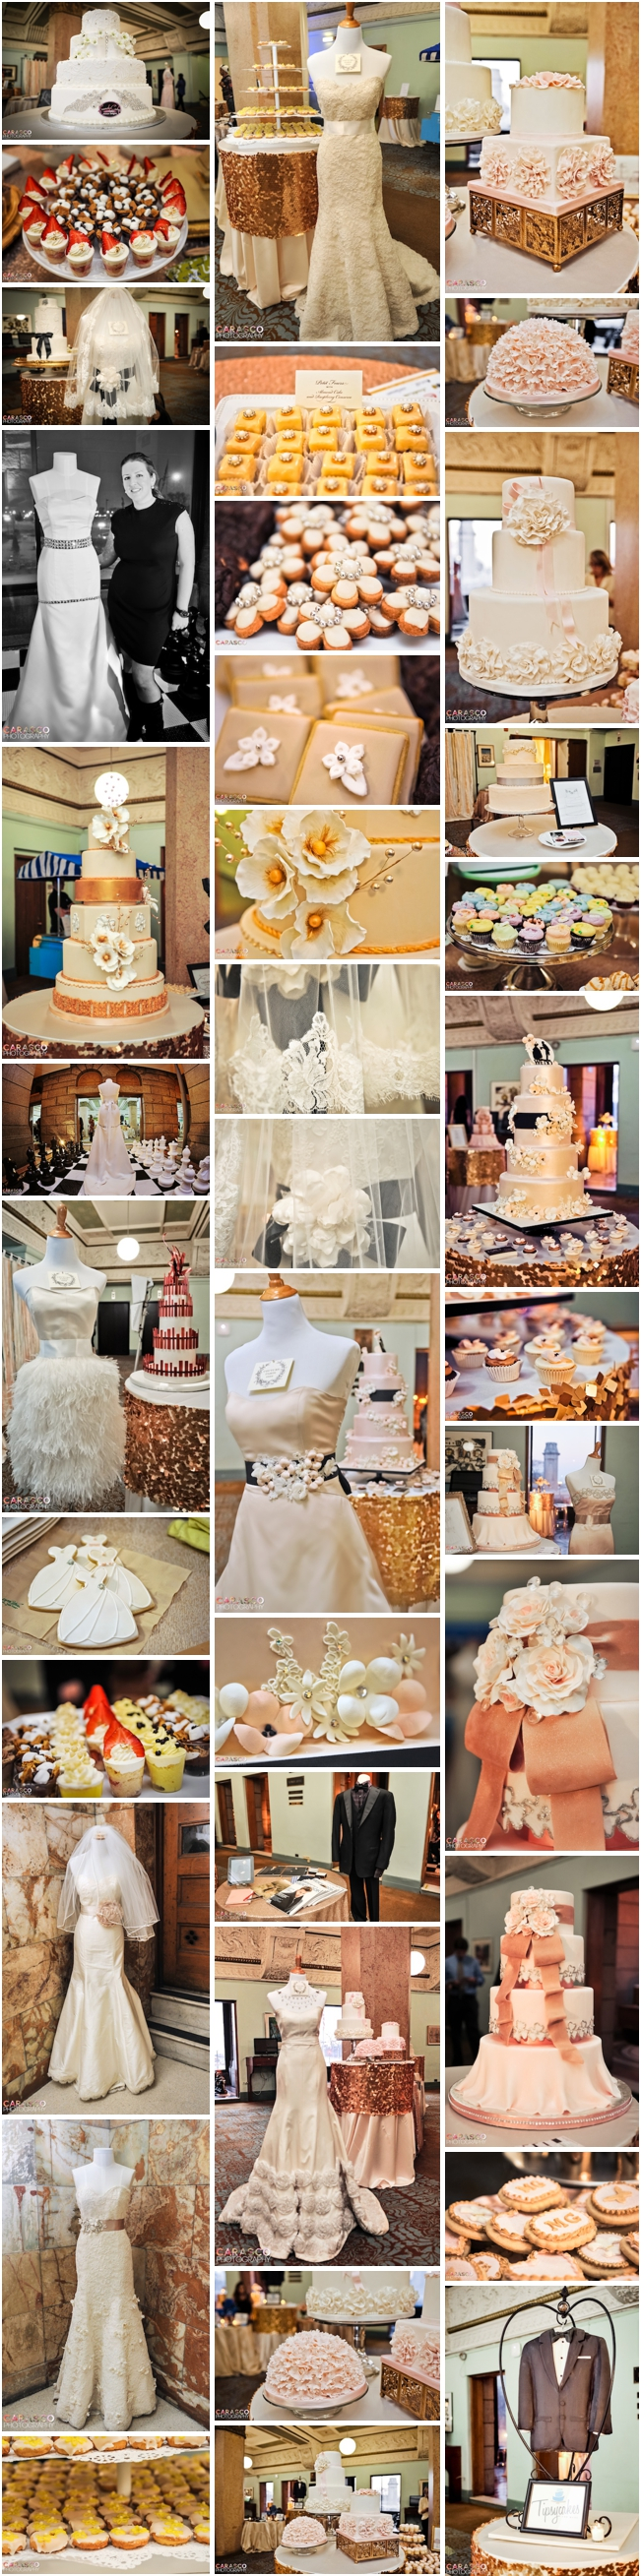 Bridal-Fete-Chicago-Wedding-Trends-Decor_2086